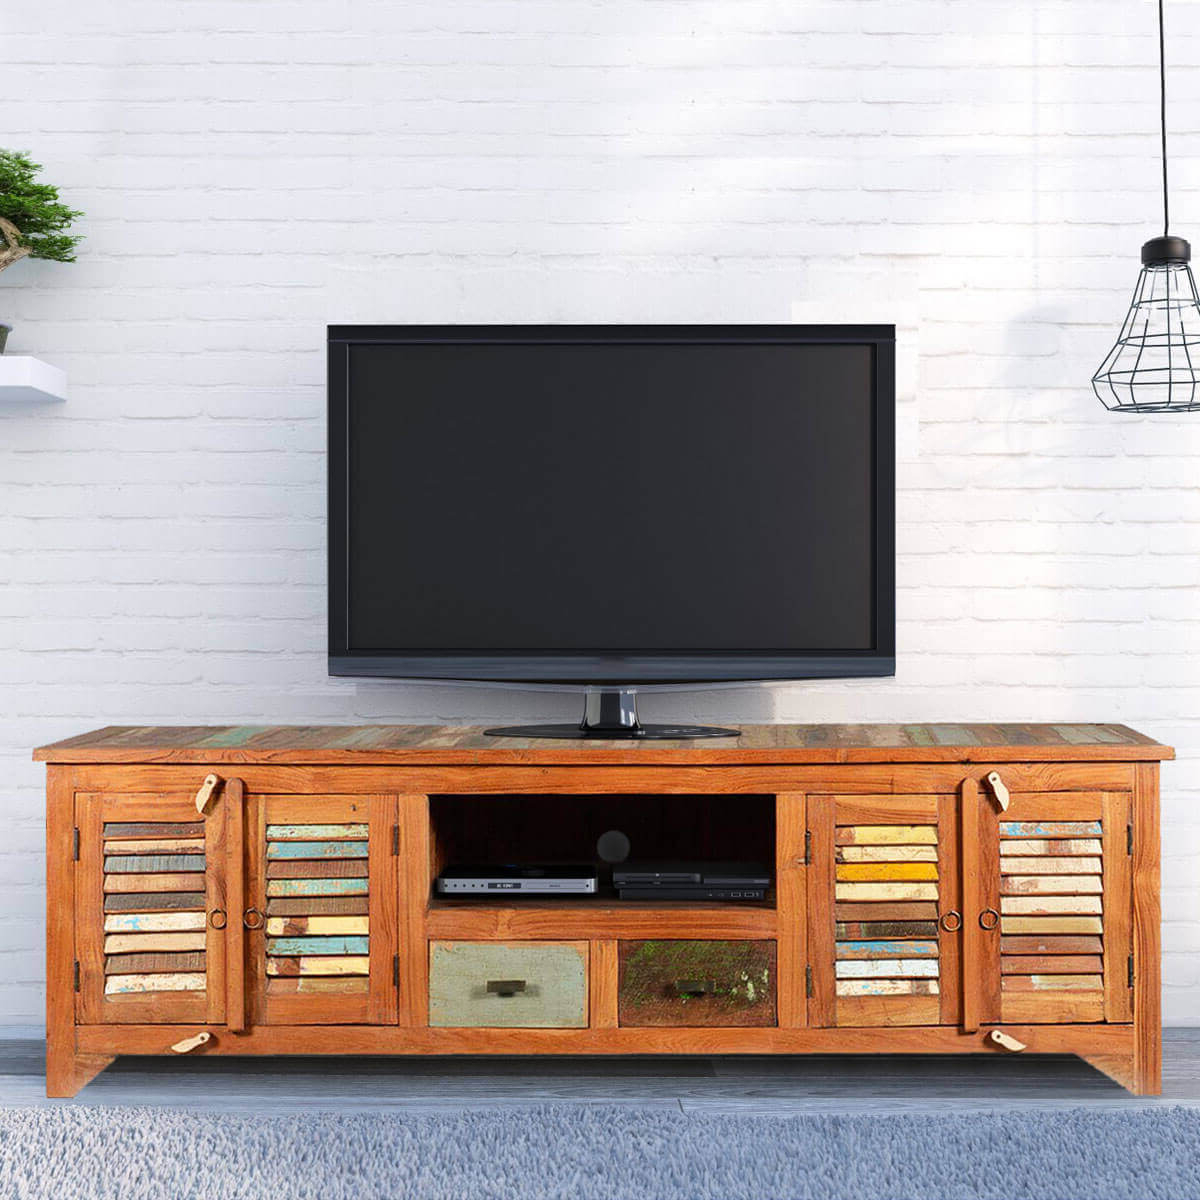 Popular Rounded Corners Mosaic Reclaimed Wood Rustic Tv Media Cabinet With Tv Stands Rounded Corners (Gallery 15 of 20)